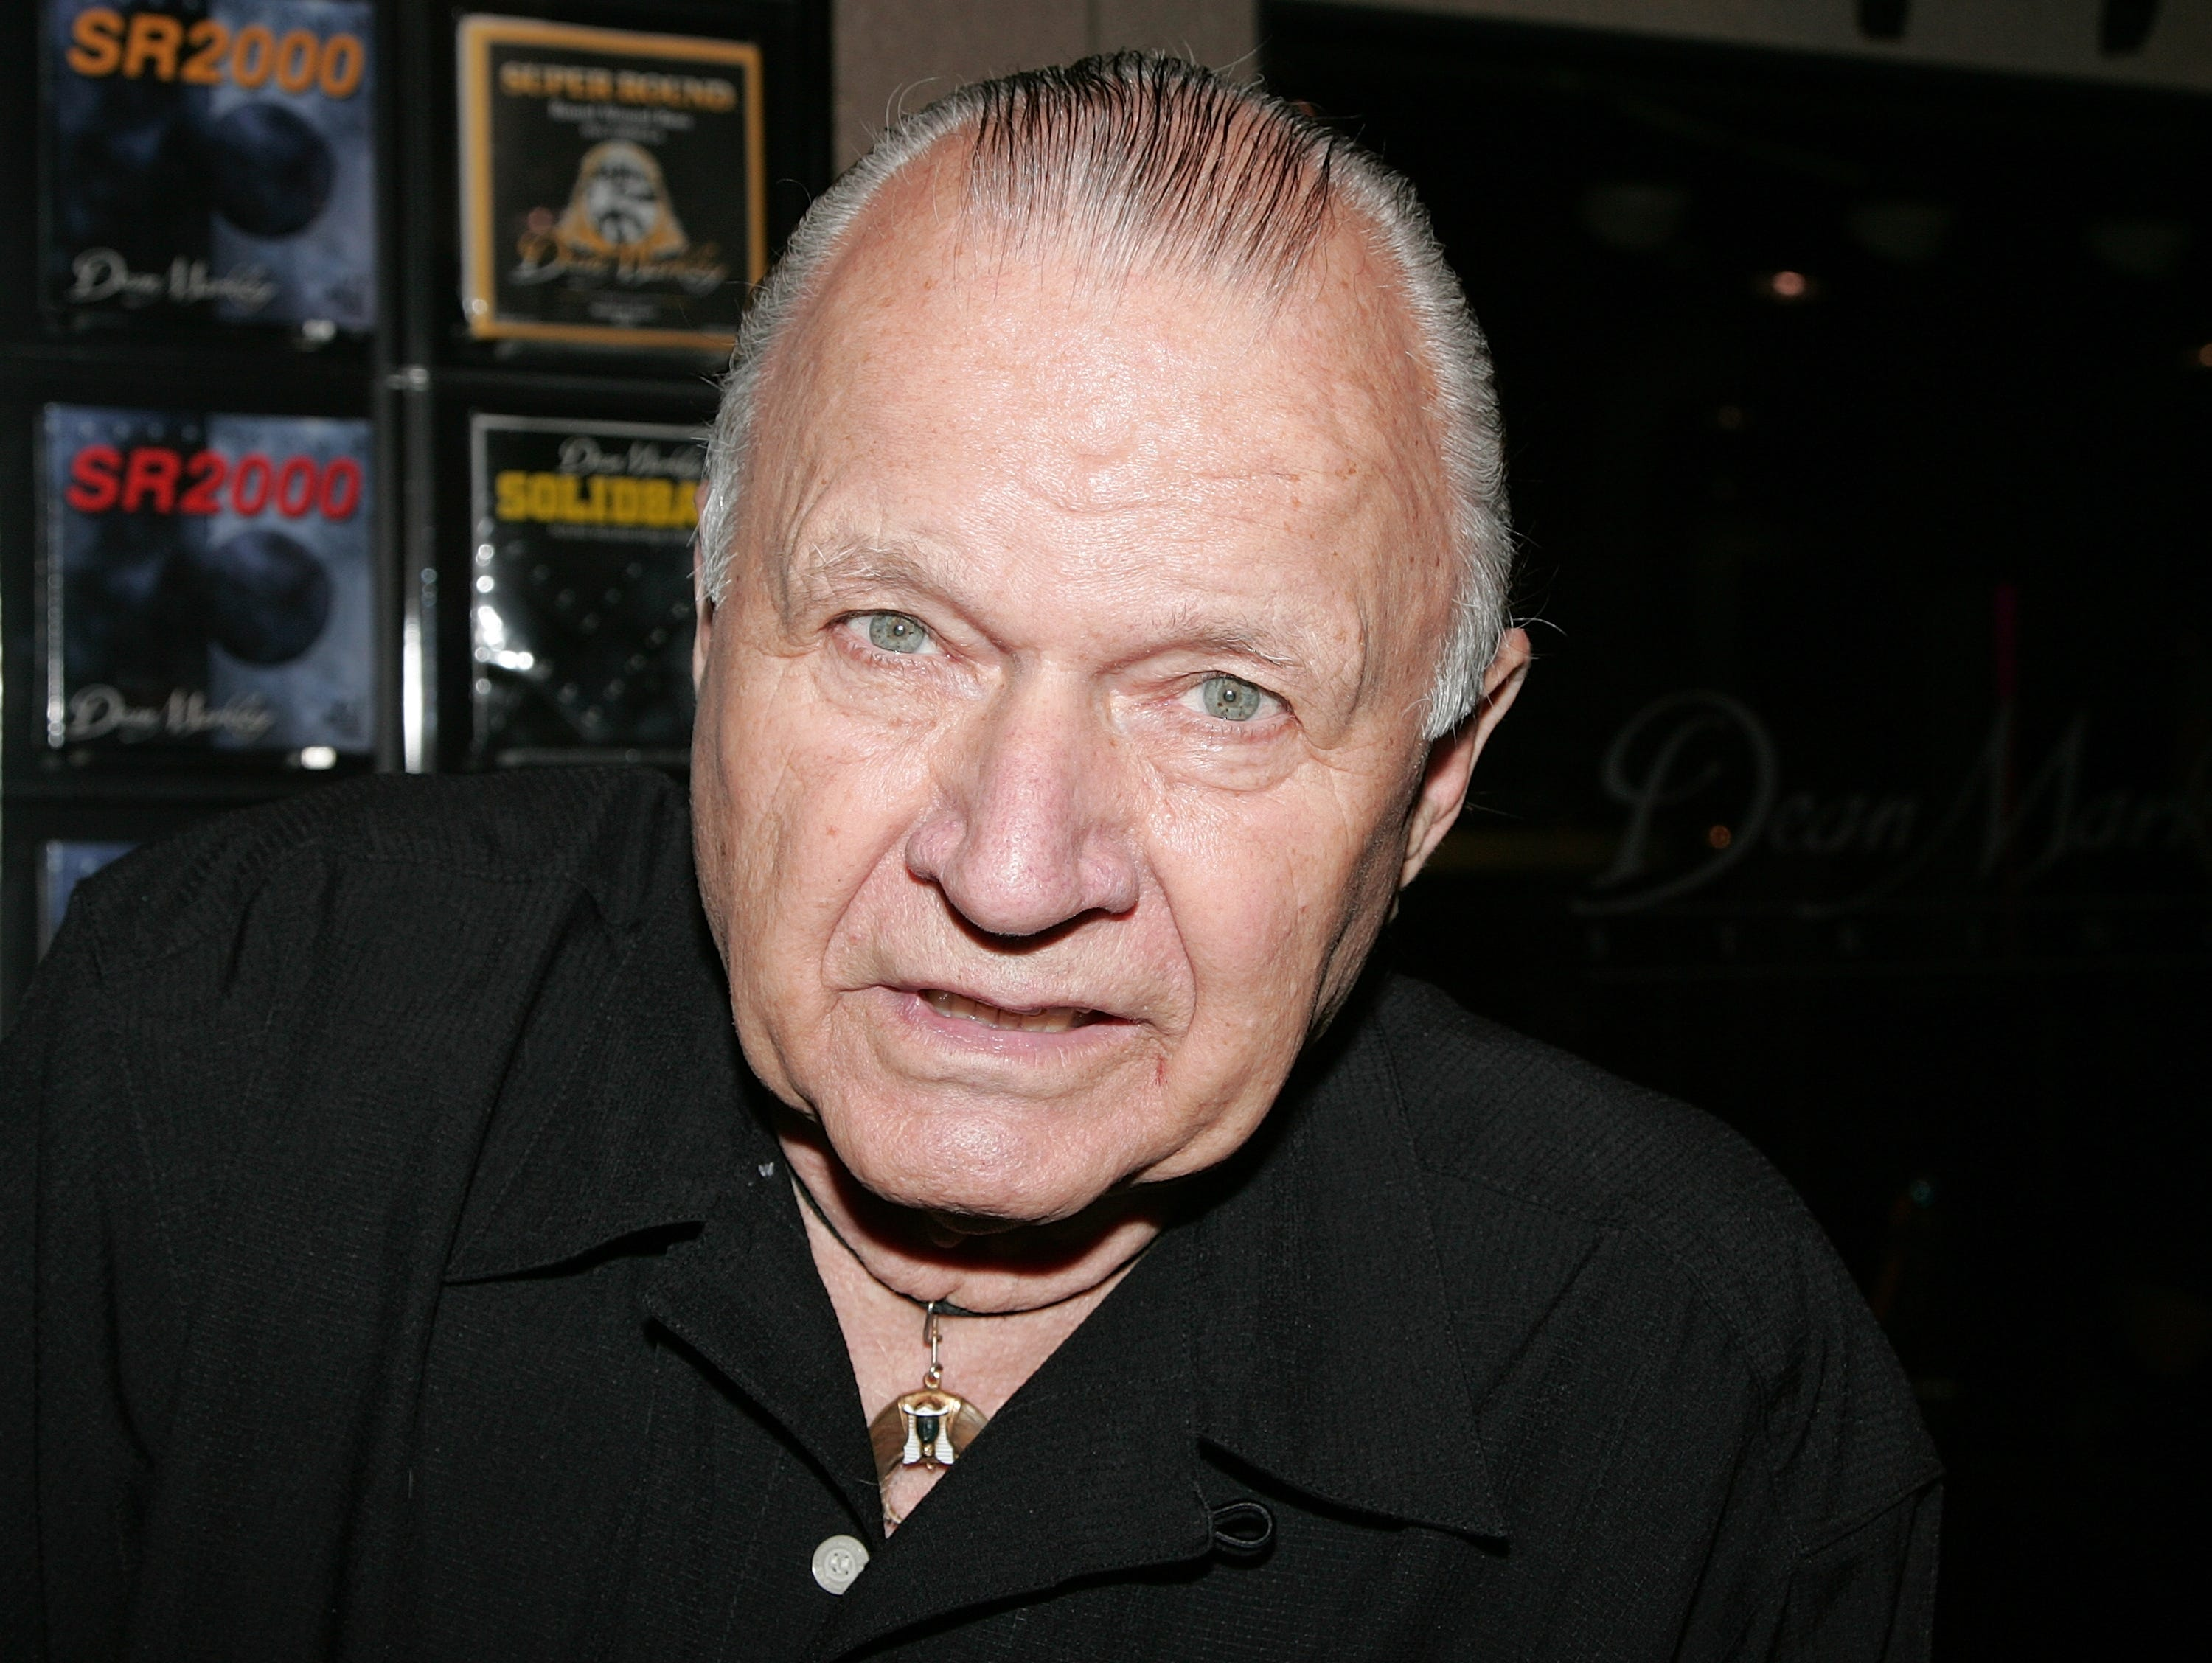 Dick Dale 'king Of The Surf Guitar Dies At 81rhargusleader: 1980 Corvette Center Console Wiring Schematic At Gmaili.net